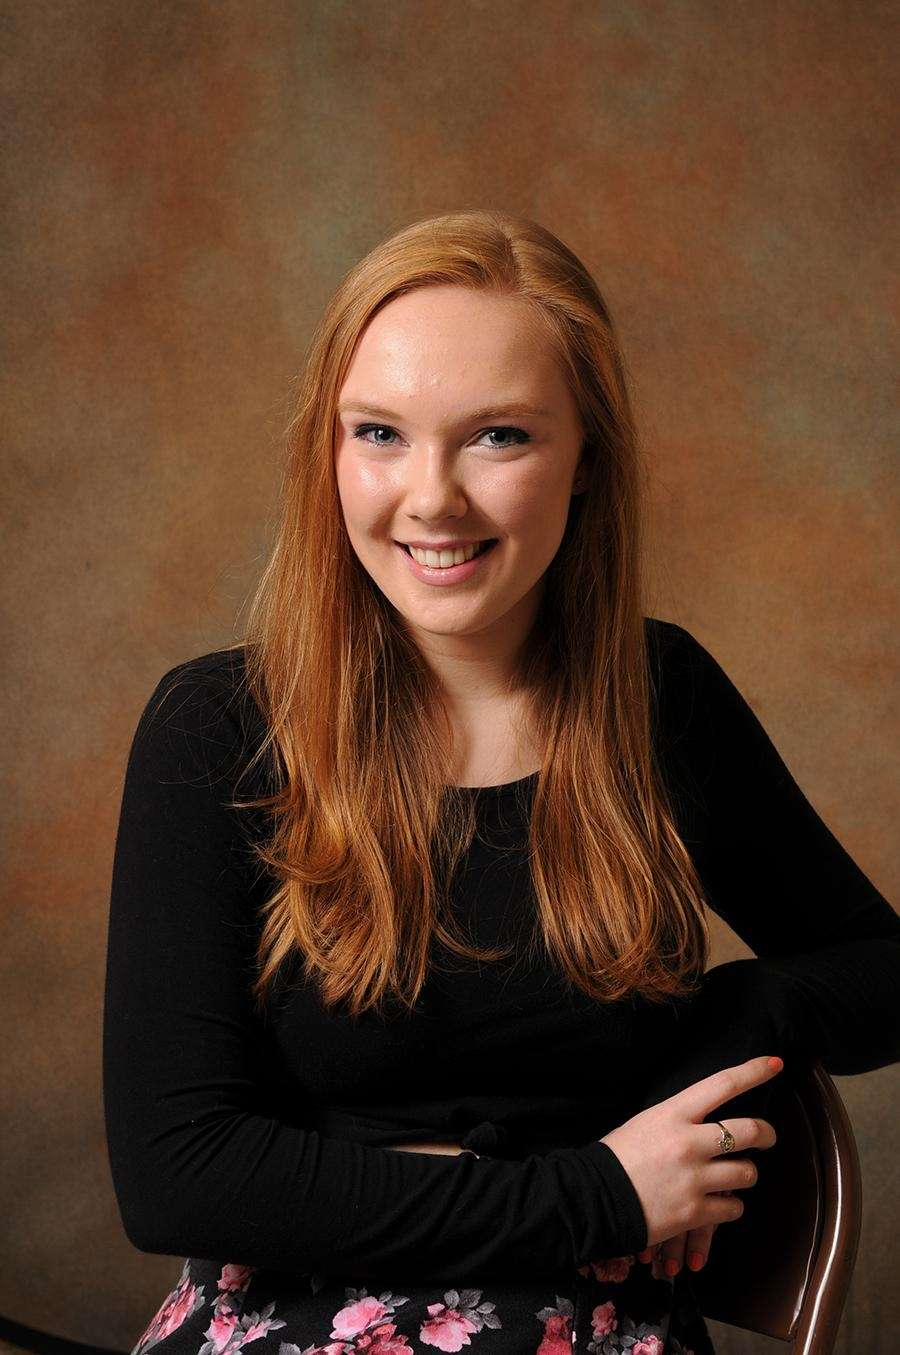 Erin O'Kelly, a senior studying at The Wheatley